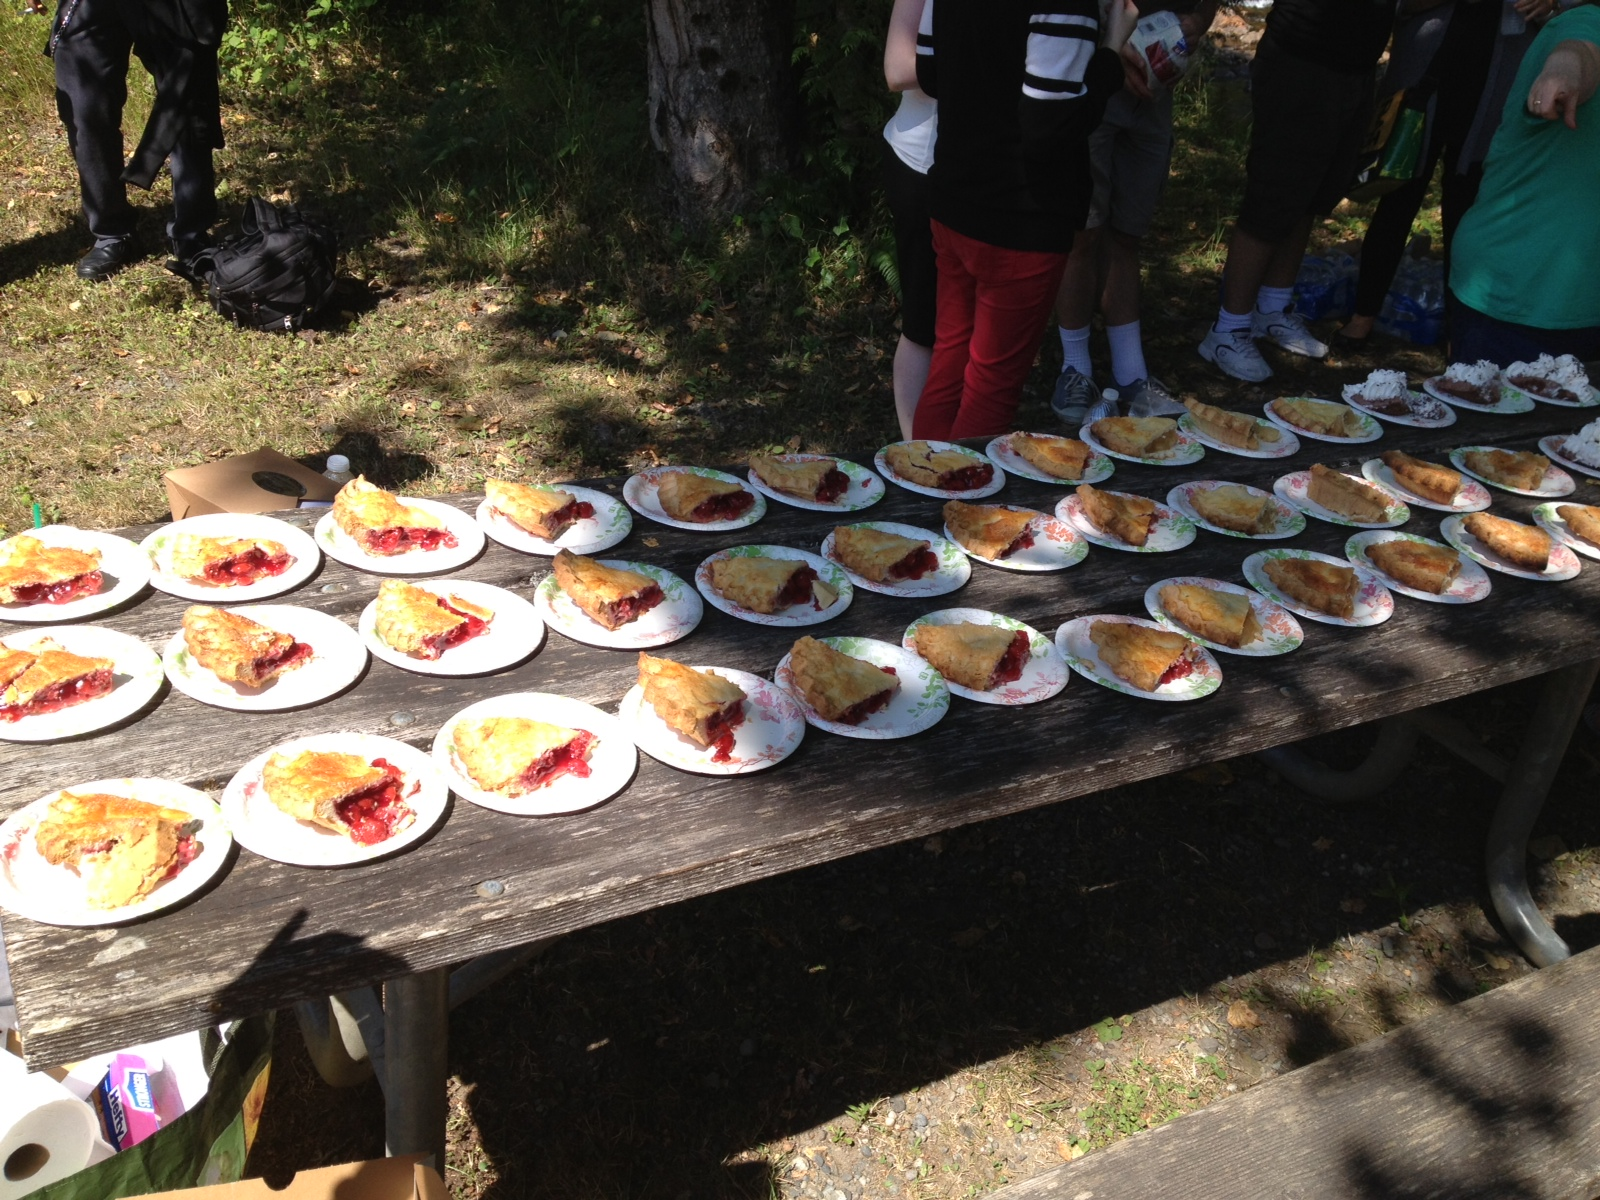 Lodes of cherry pie from Twede's at the farewell picnic.